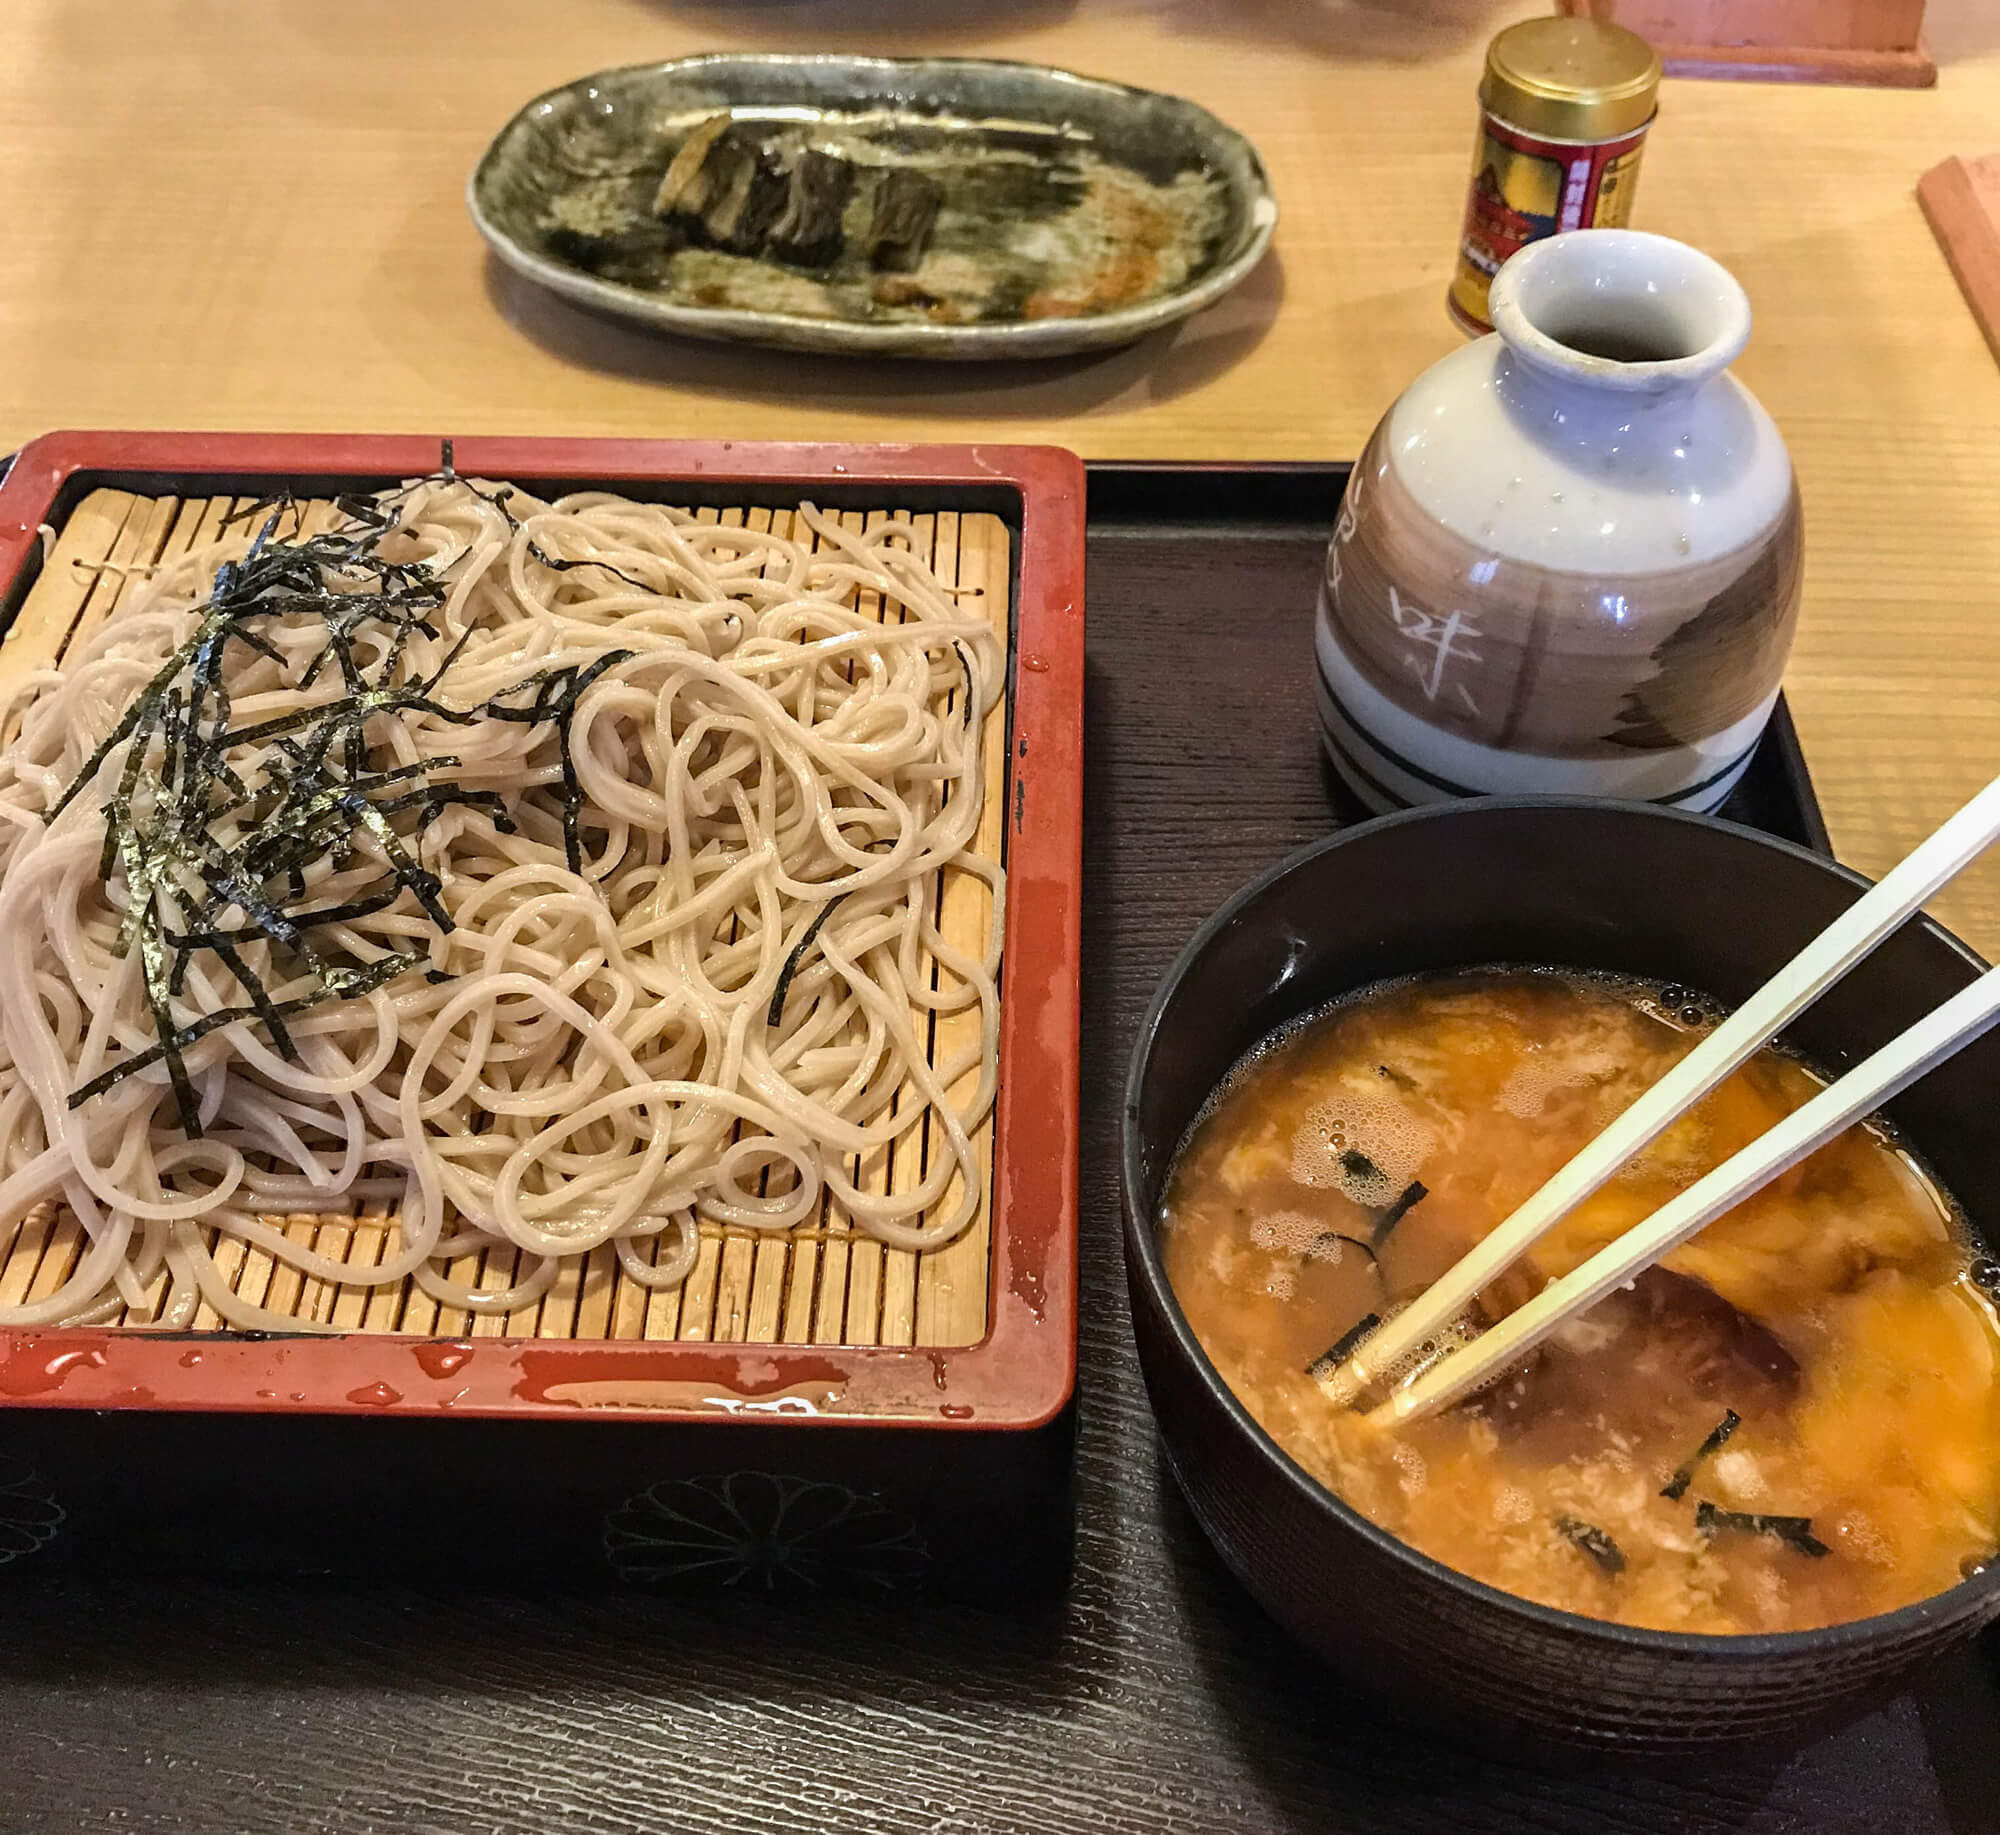 A TYPICAL LUNCHTIME MEAL - SOBA NOODLES, WITH SOME FAMOUS NOZAWANA IN THE BACKGROUND